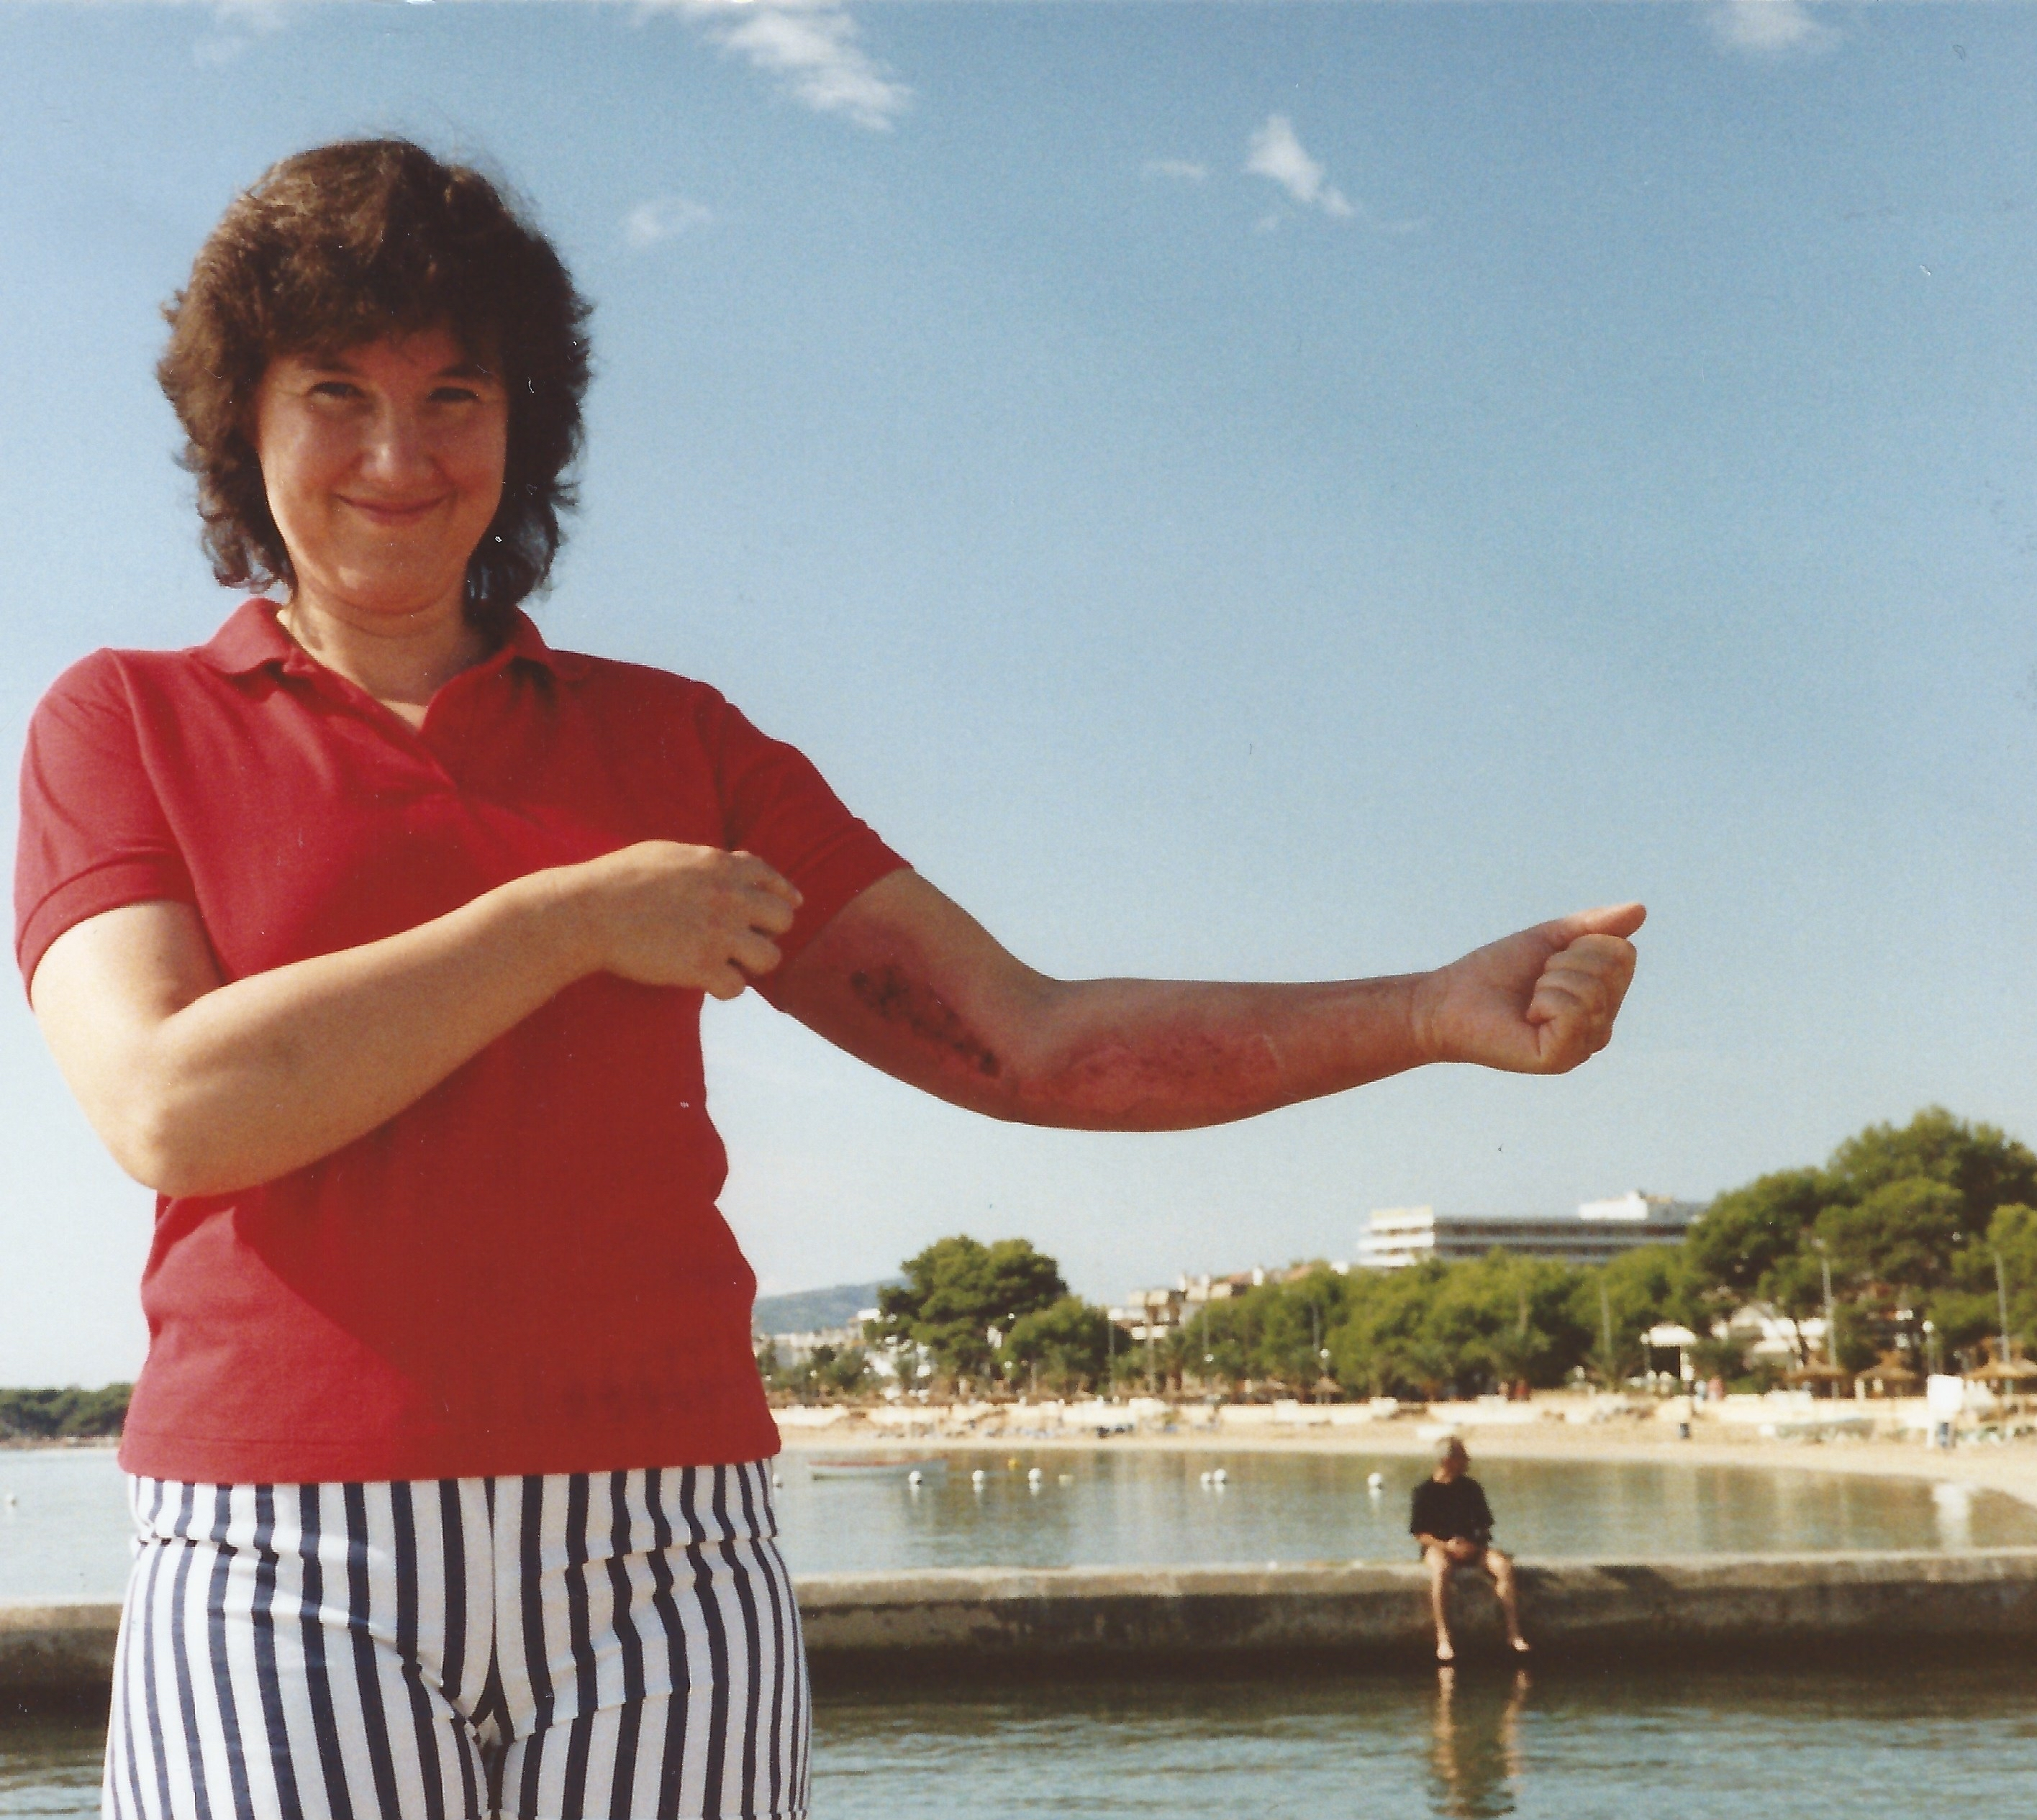 Lynda, sttod in shorts and tee-shirt in bright sunshine on a beach, with her left arm outstretched showing the red raw burn marks on her arm